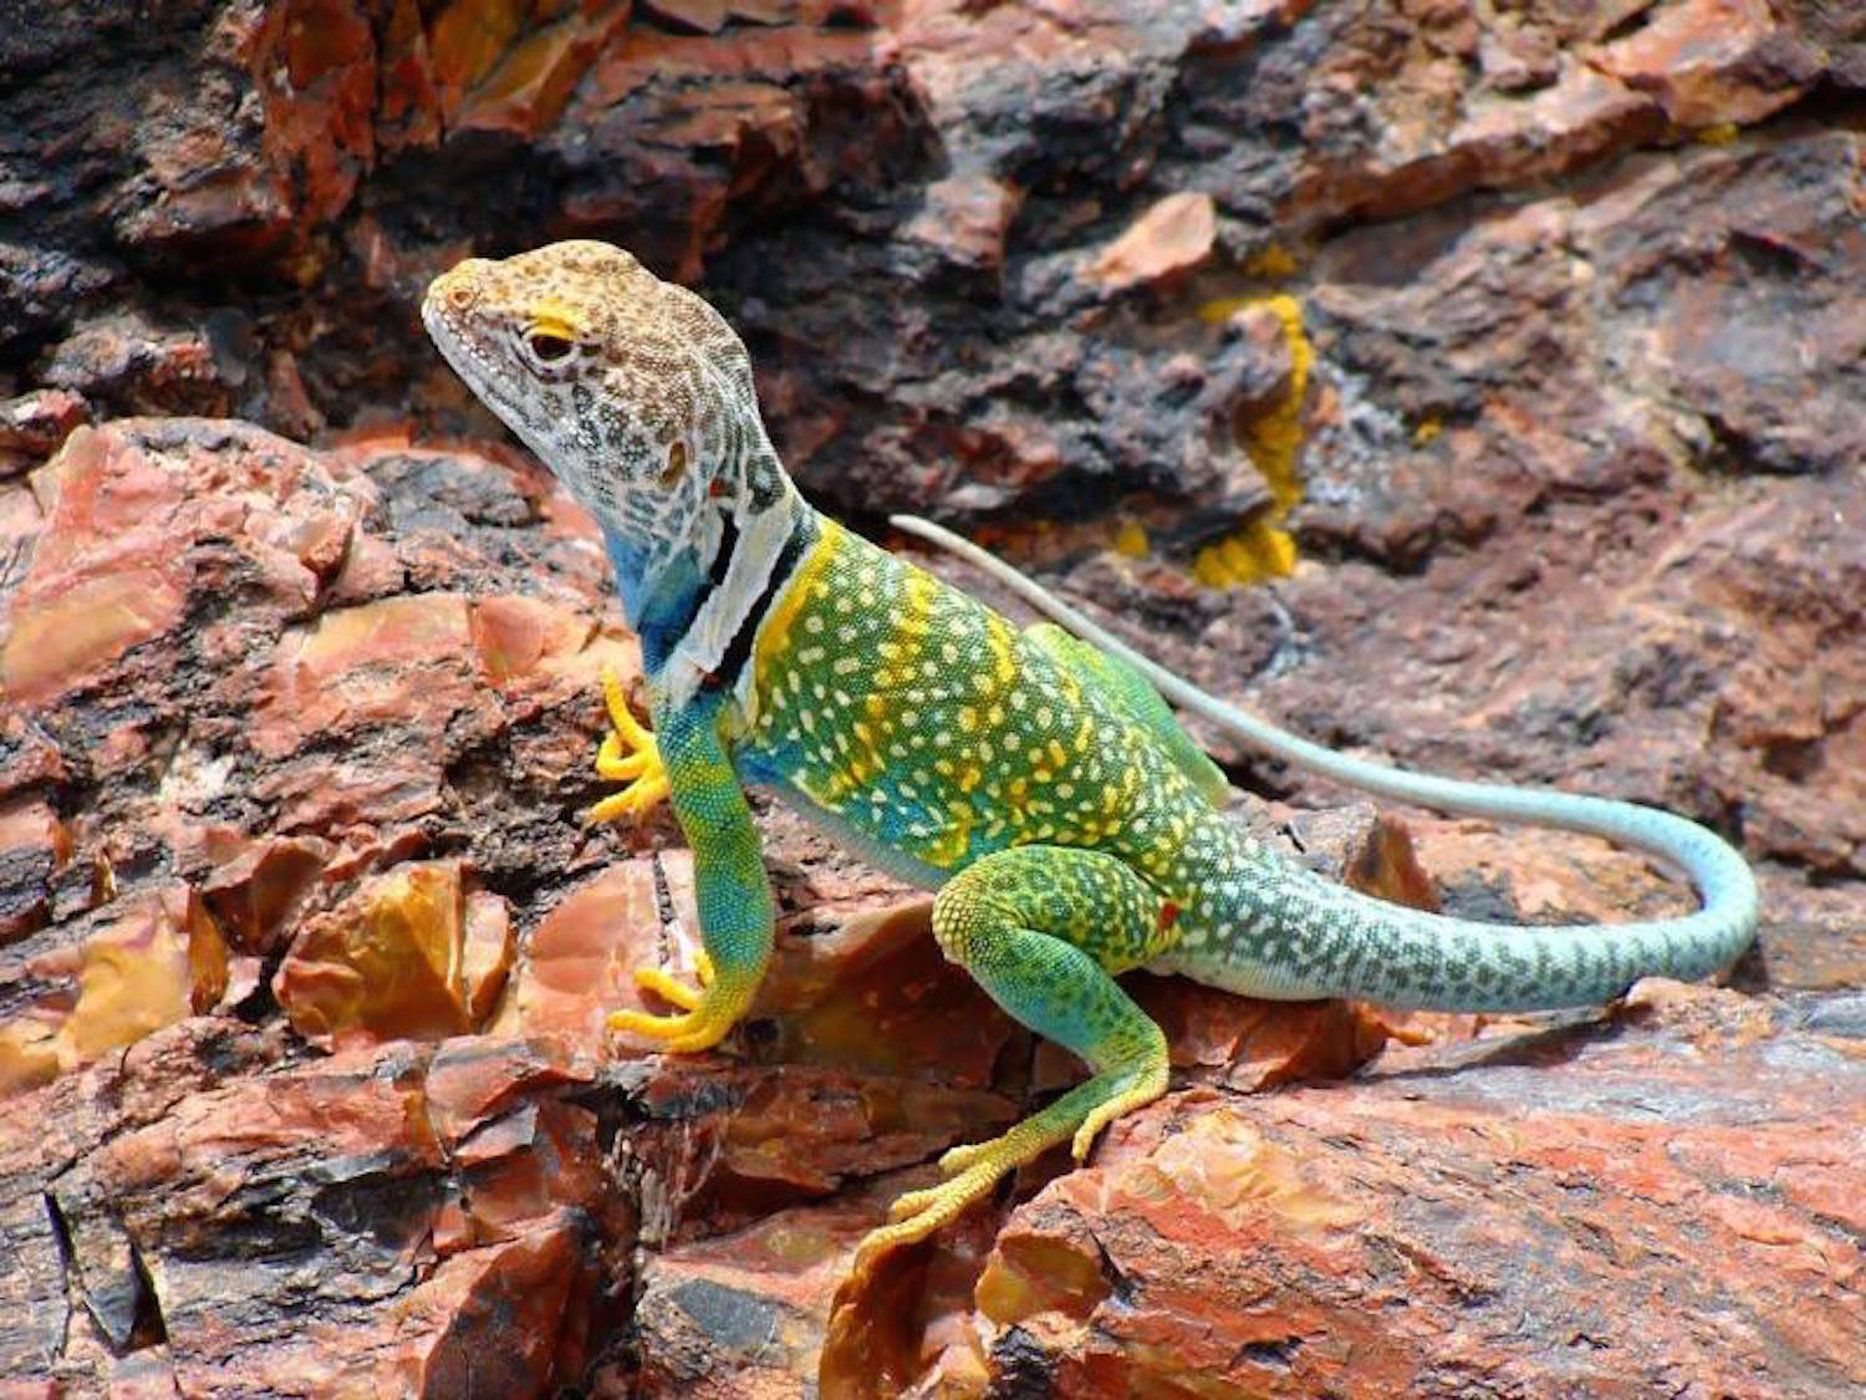 In Photos: Flashy Collared Lizards of the North American ...